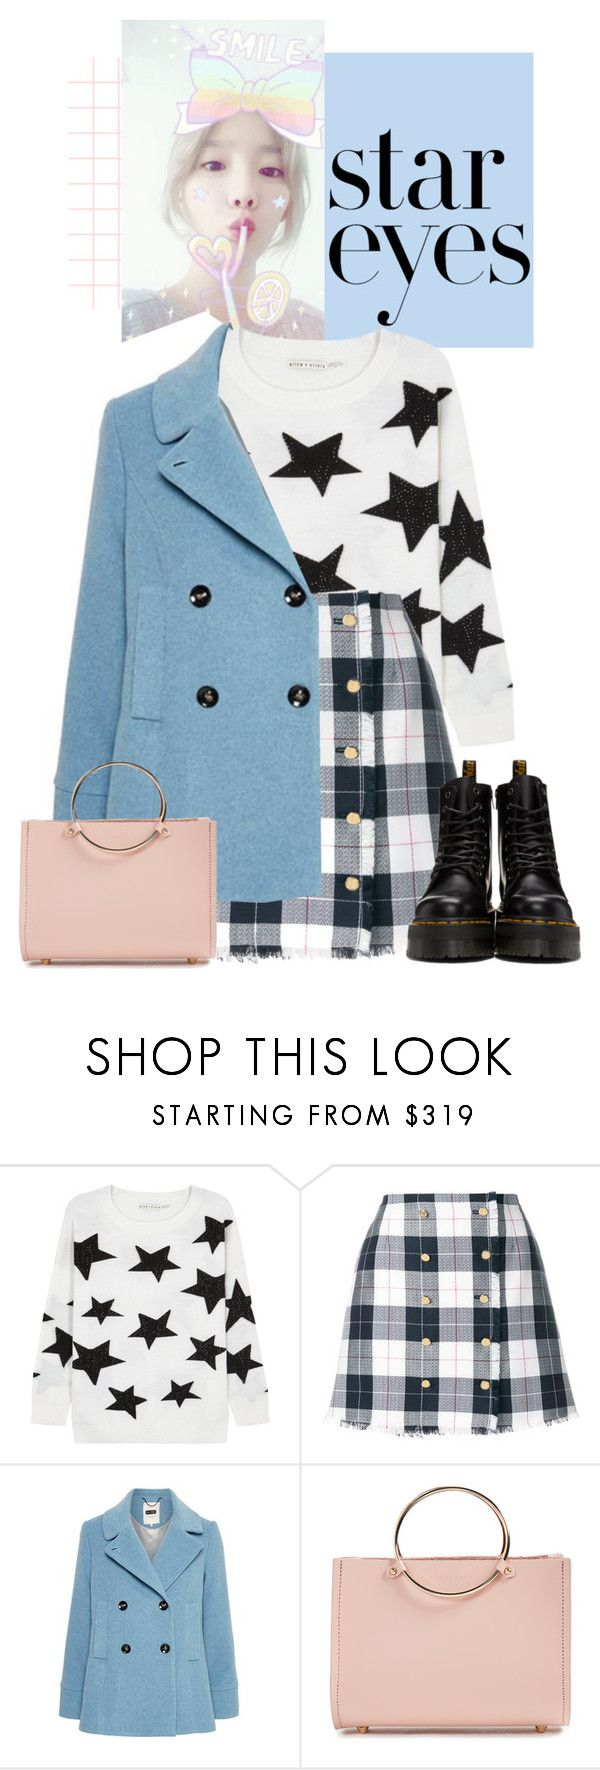 """""""Twinkle, Twinkle: Star Outfits"""" by kts-desilva ❤ liked on Polyvore featuring Alice + Olivia, Thom Browne, Future Glory Co., Dr. Martens and StarOutfits"""